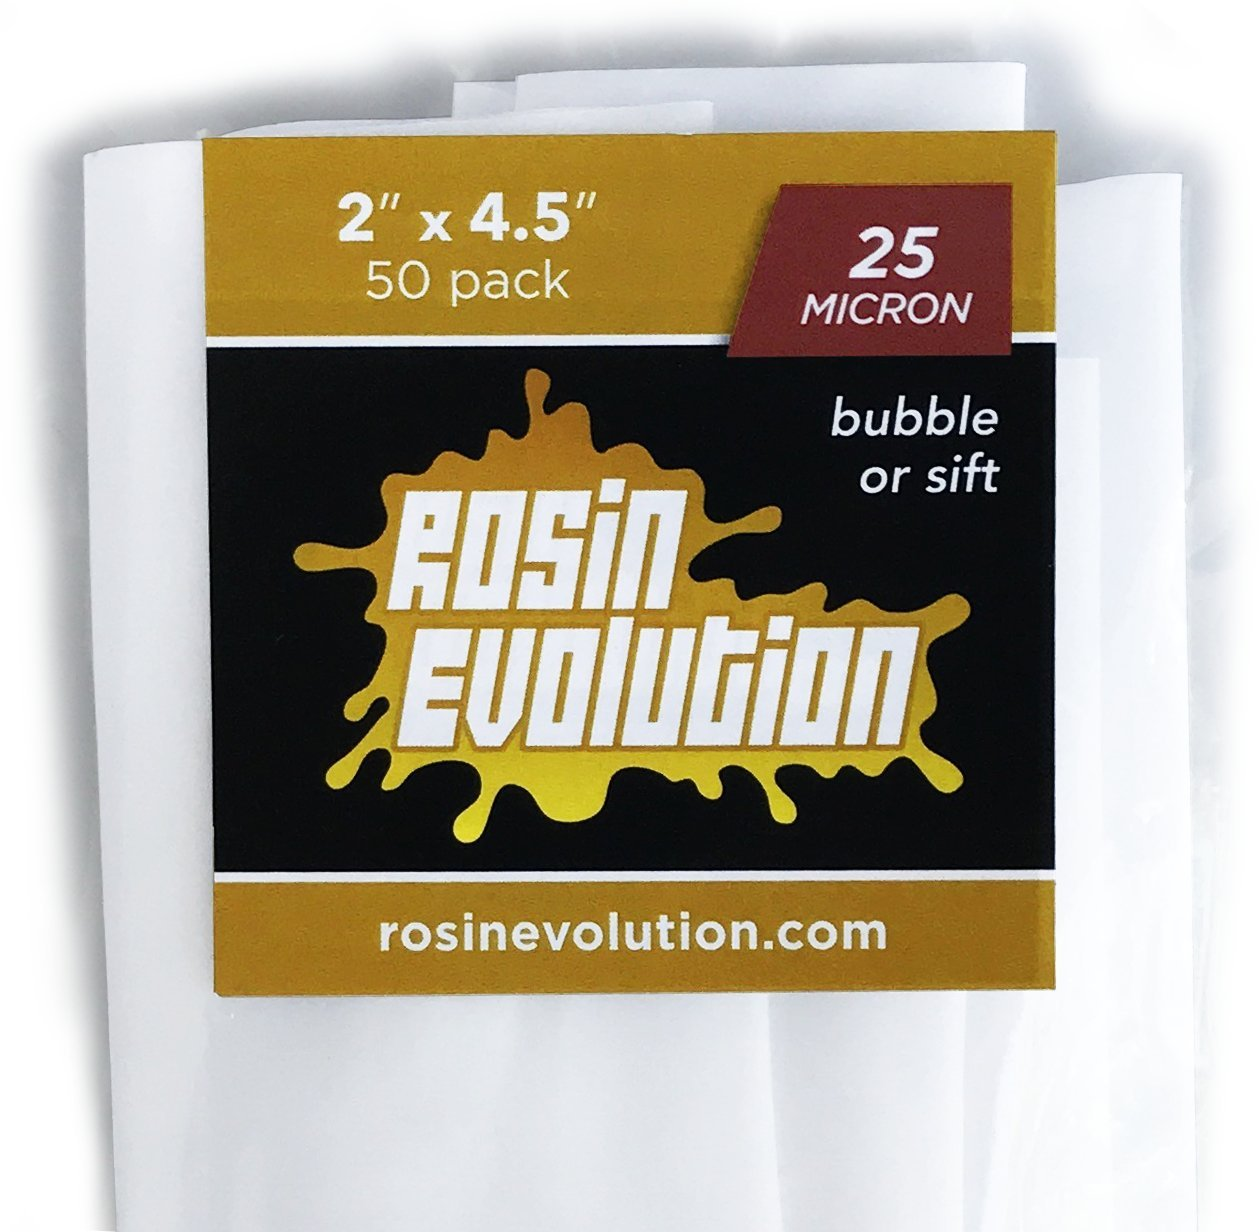 Rosin Evolution Press Bags - 25 Micron Screens (2'' x 4.5'') - 50 Pack by Rosin Evolution